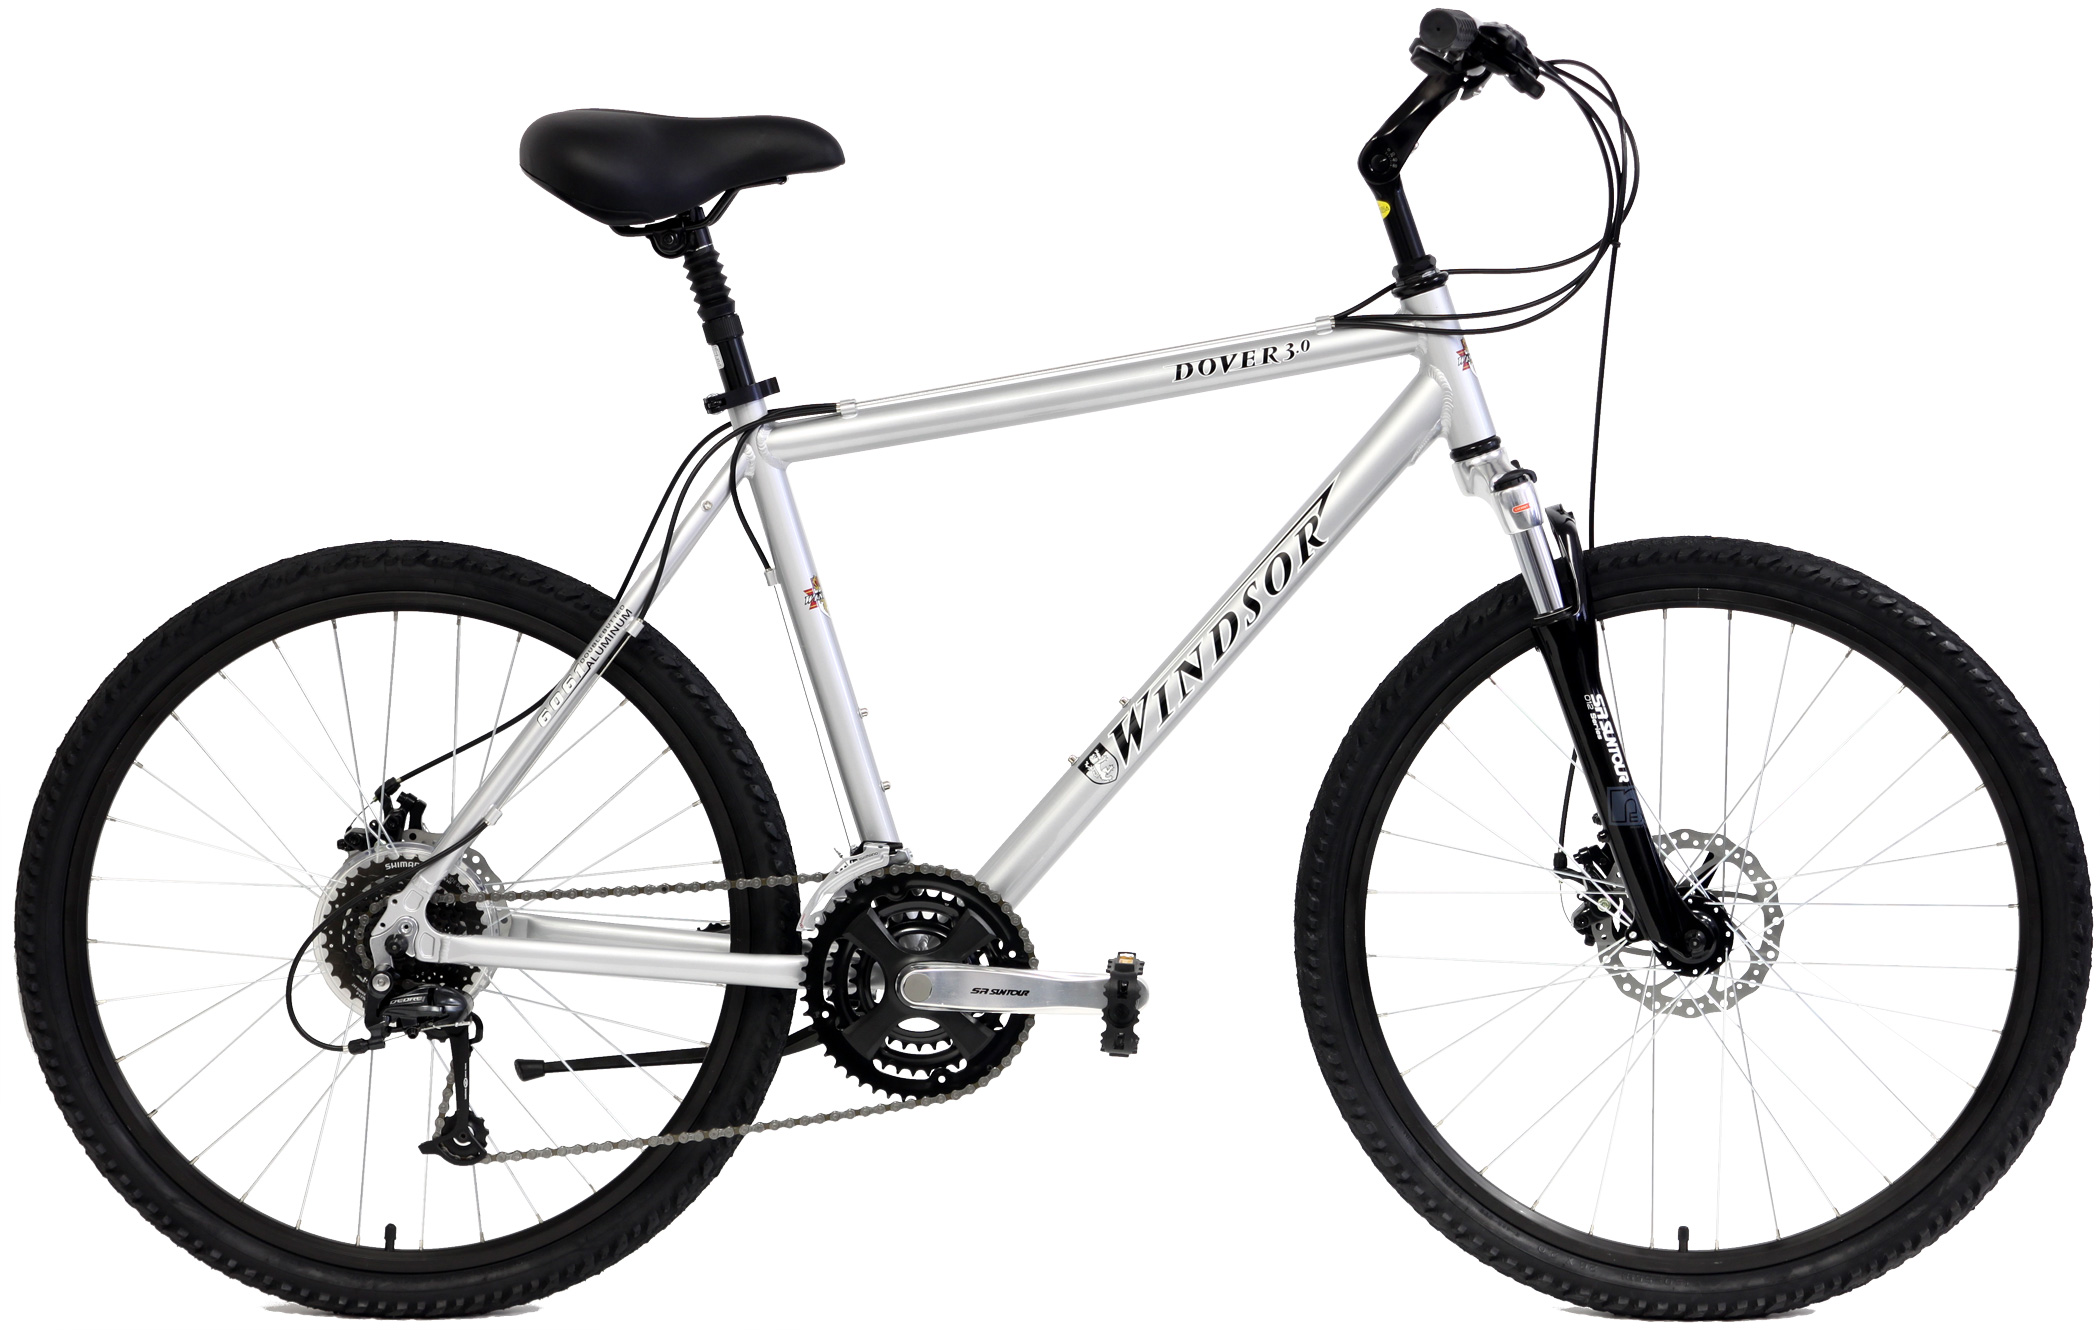 DOVER 3.0 - 24sp ALUMINUM COMFORT BIKE w/ SHOCKS & DISC BRAKES